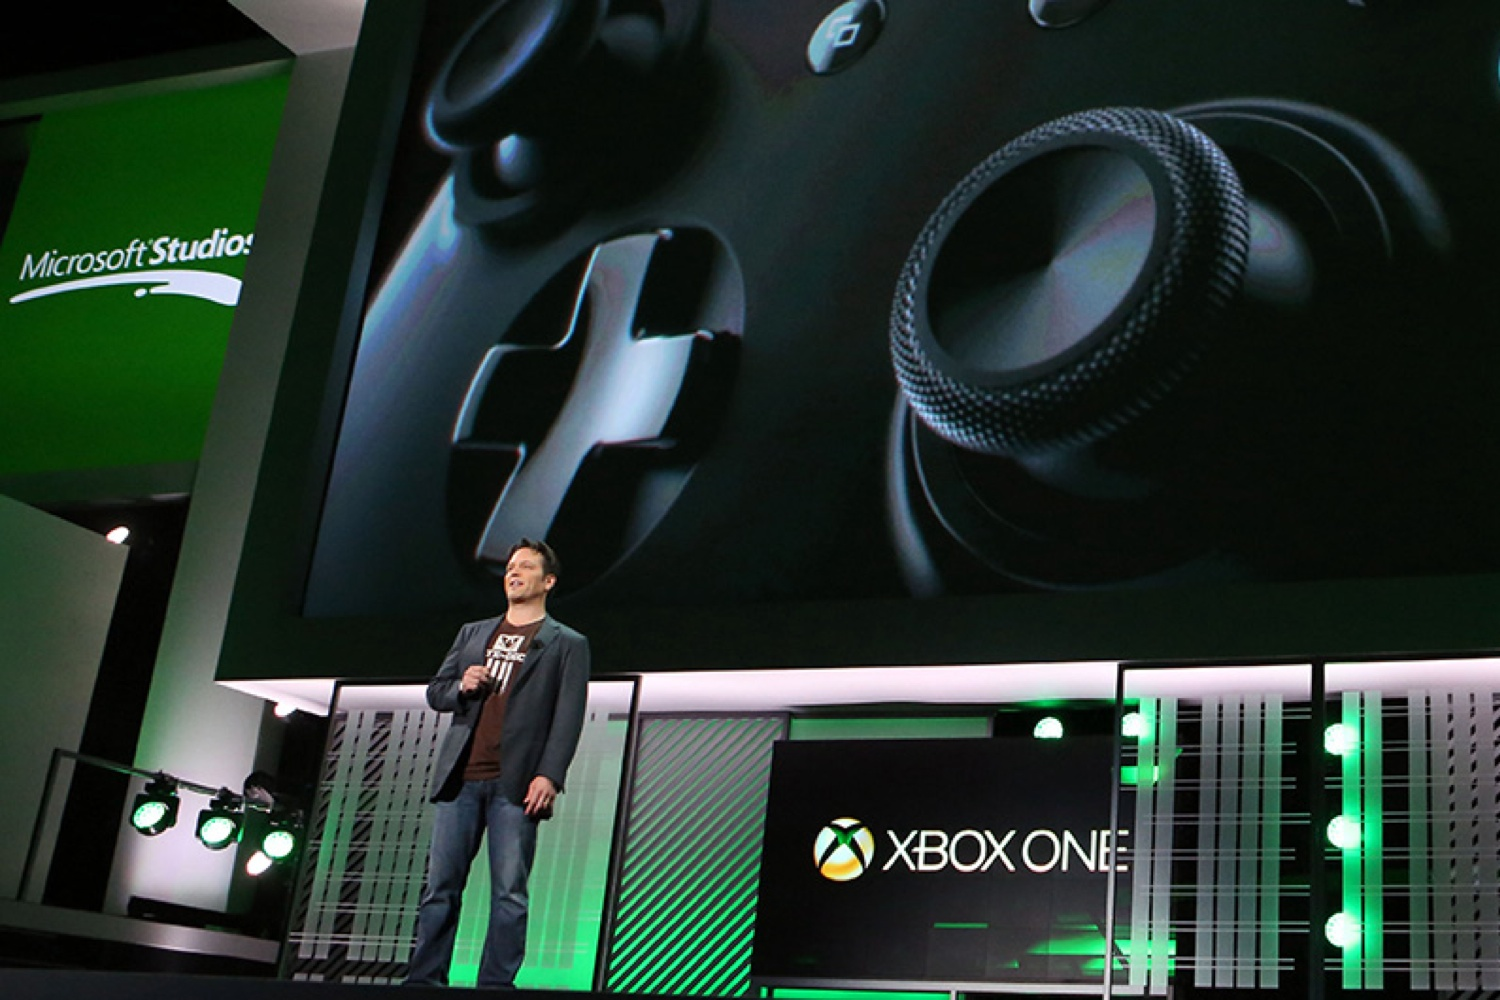 Phil Spencer on stage at the Xbox E3 2013 media briefing.